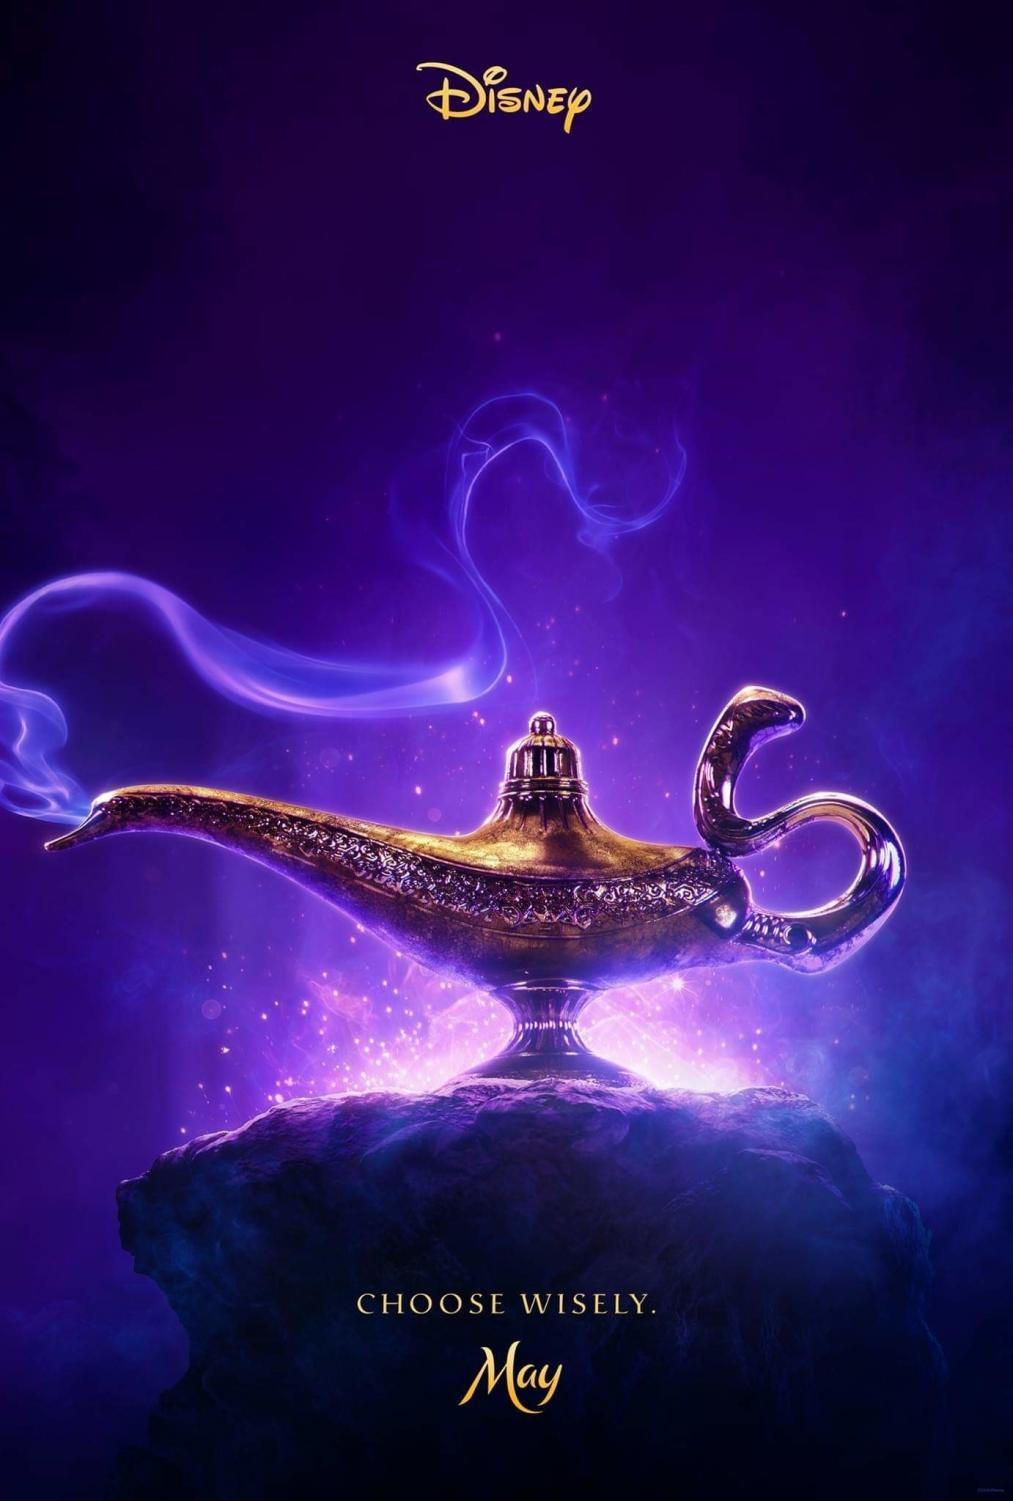 The poster for Aladdin featuring the famous genie lamp.